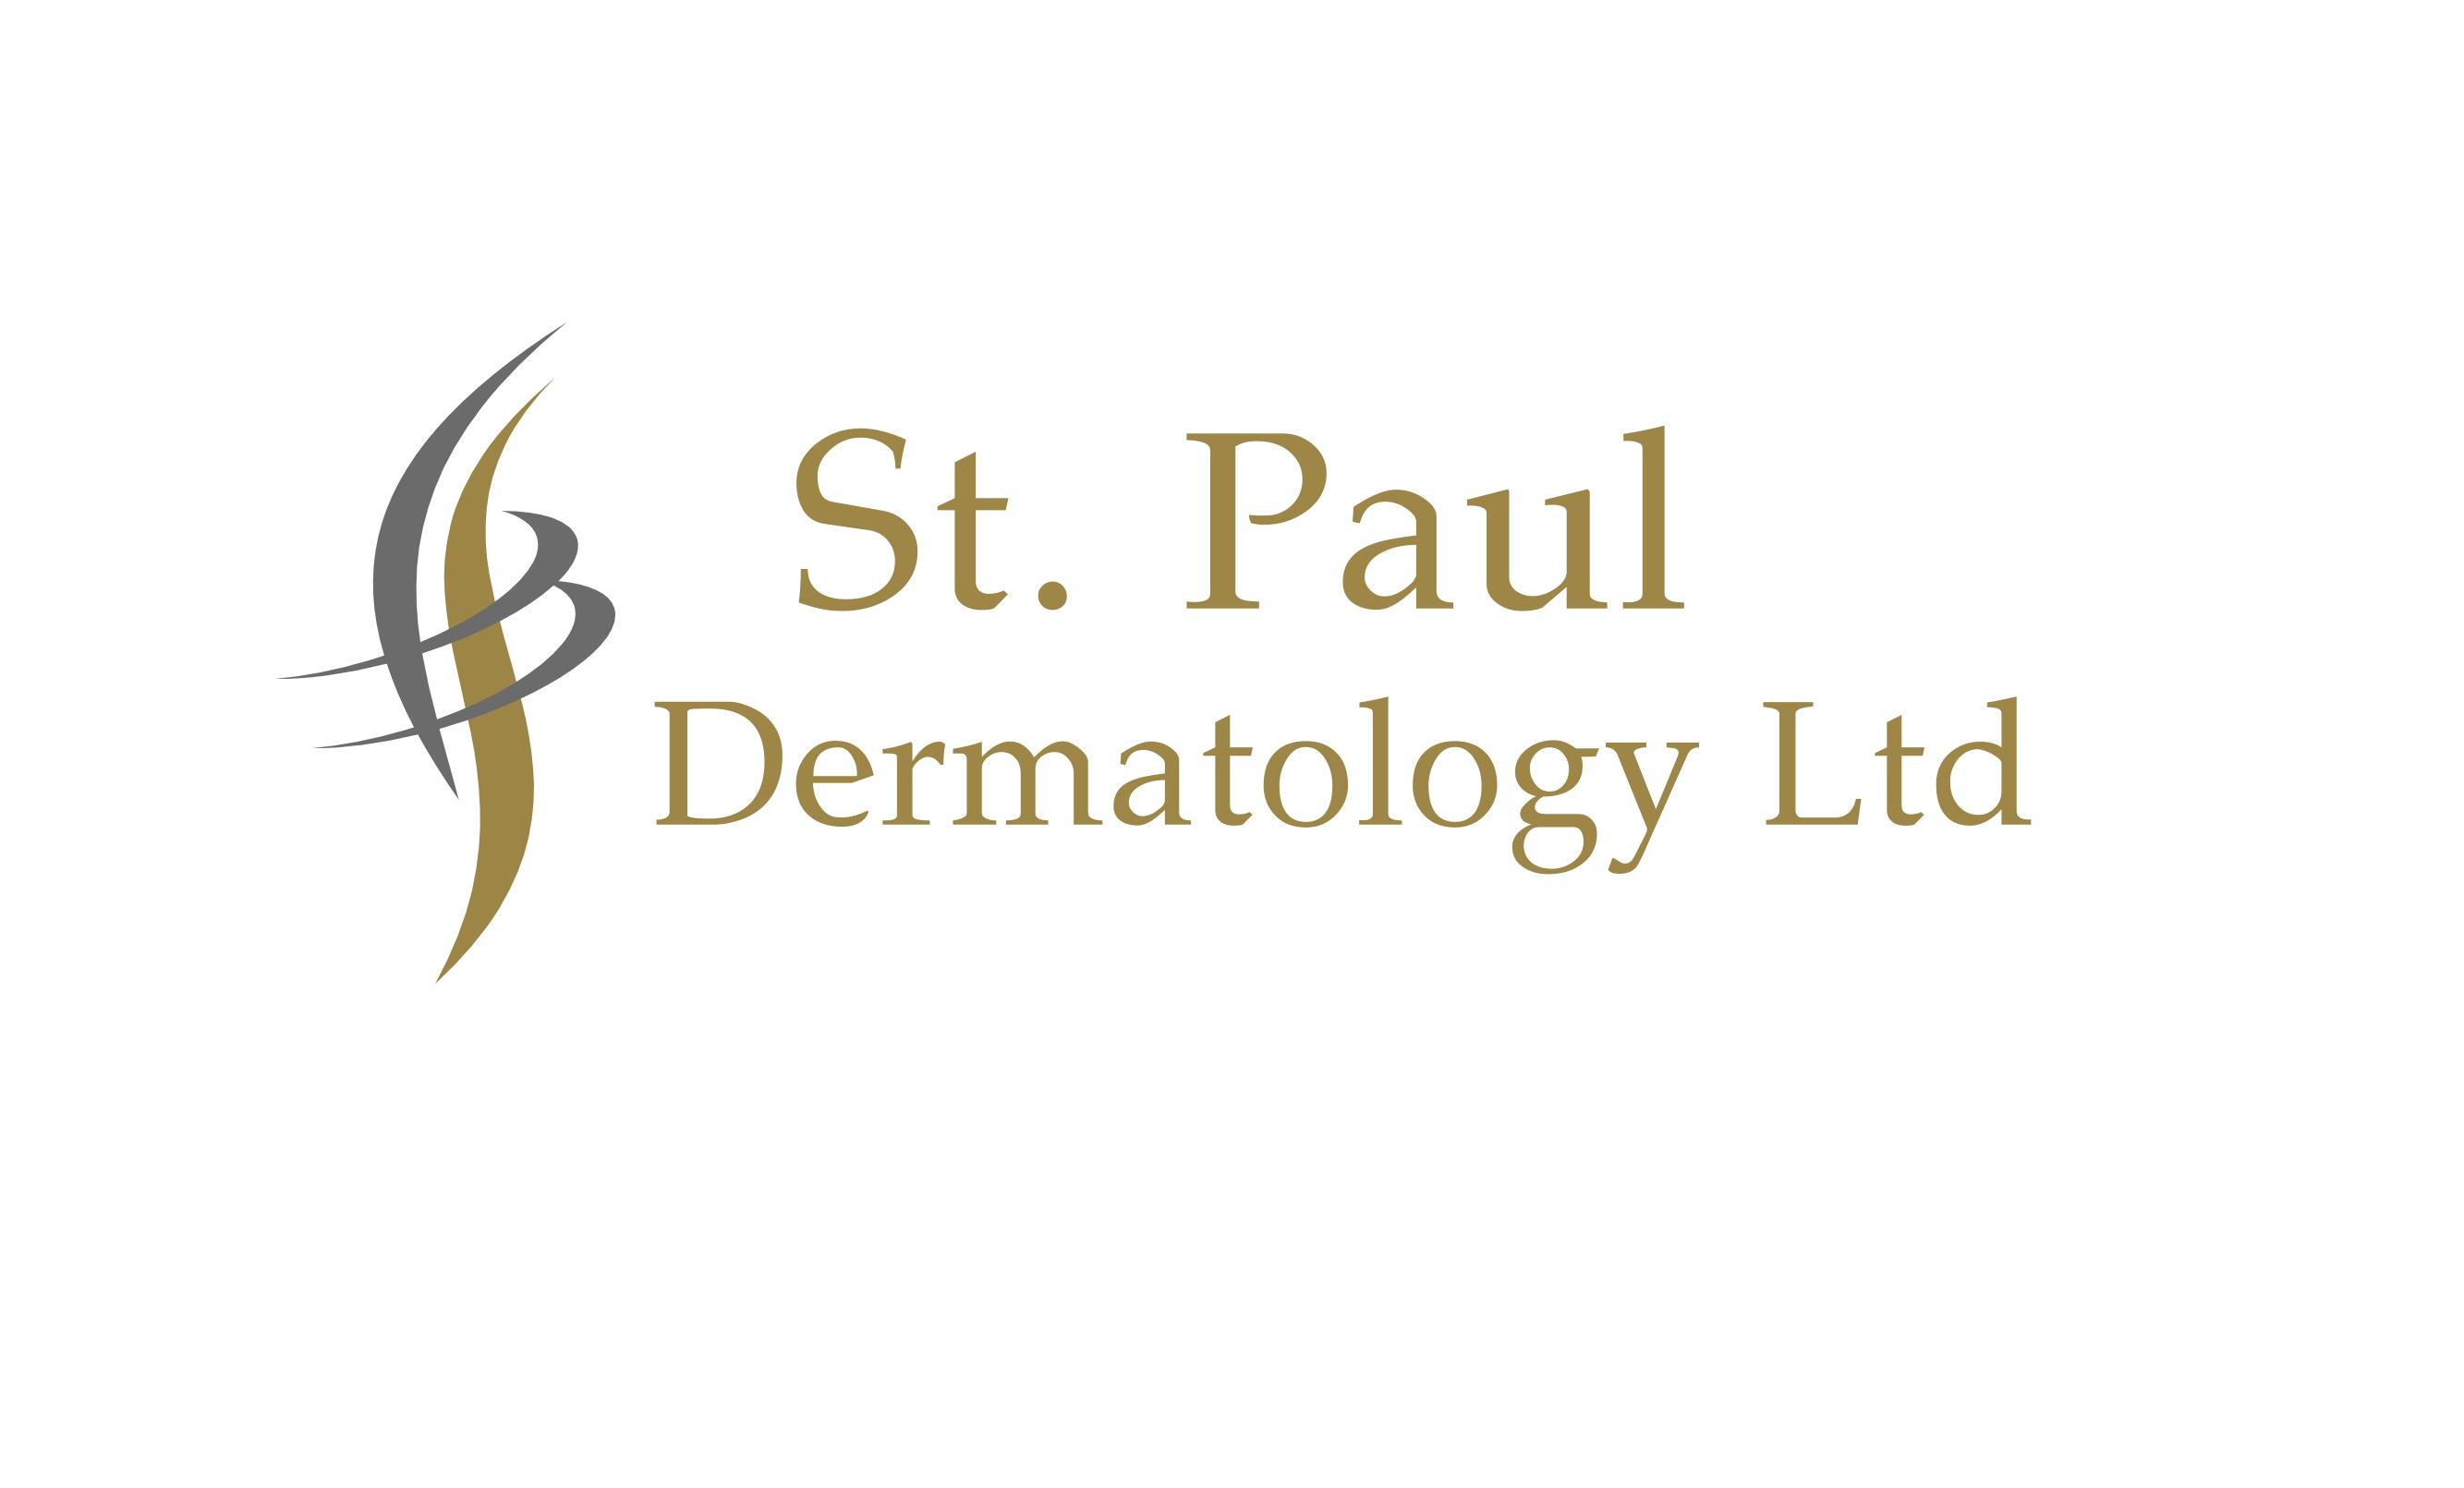 Saint Paul Dermatology Ltd